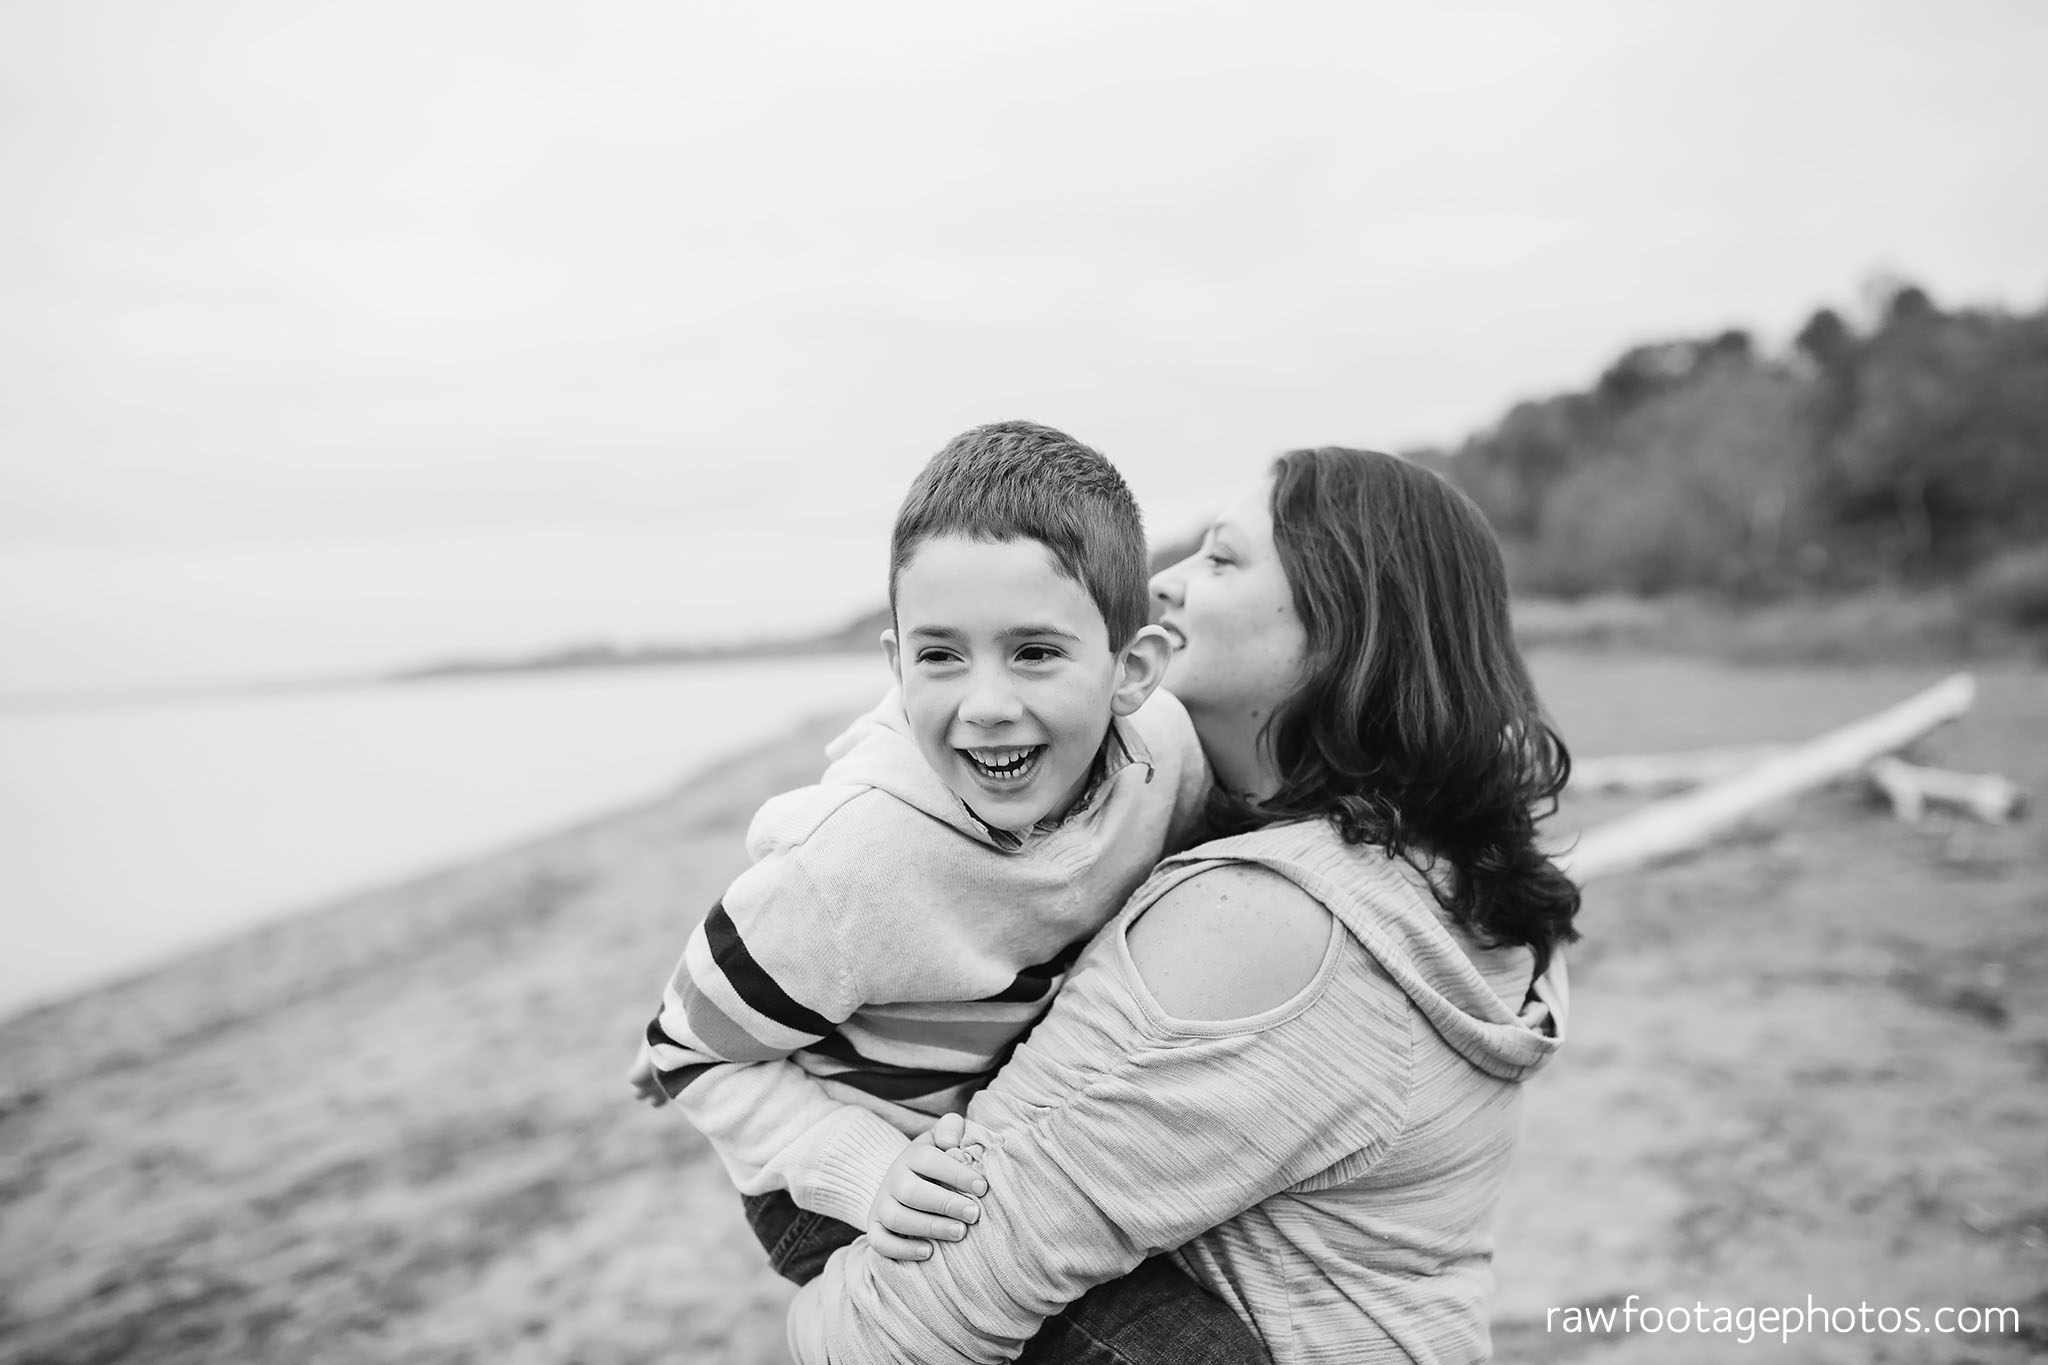 london_ontario_family_photographer-port_stanley_photography-raw_footage_photography-family_photos-beach_photos-fall_family_photos-lifestyle_family_photography-candid_photographer028.jpg